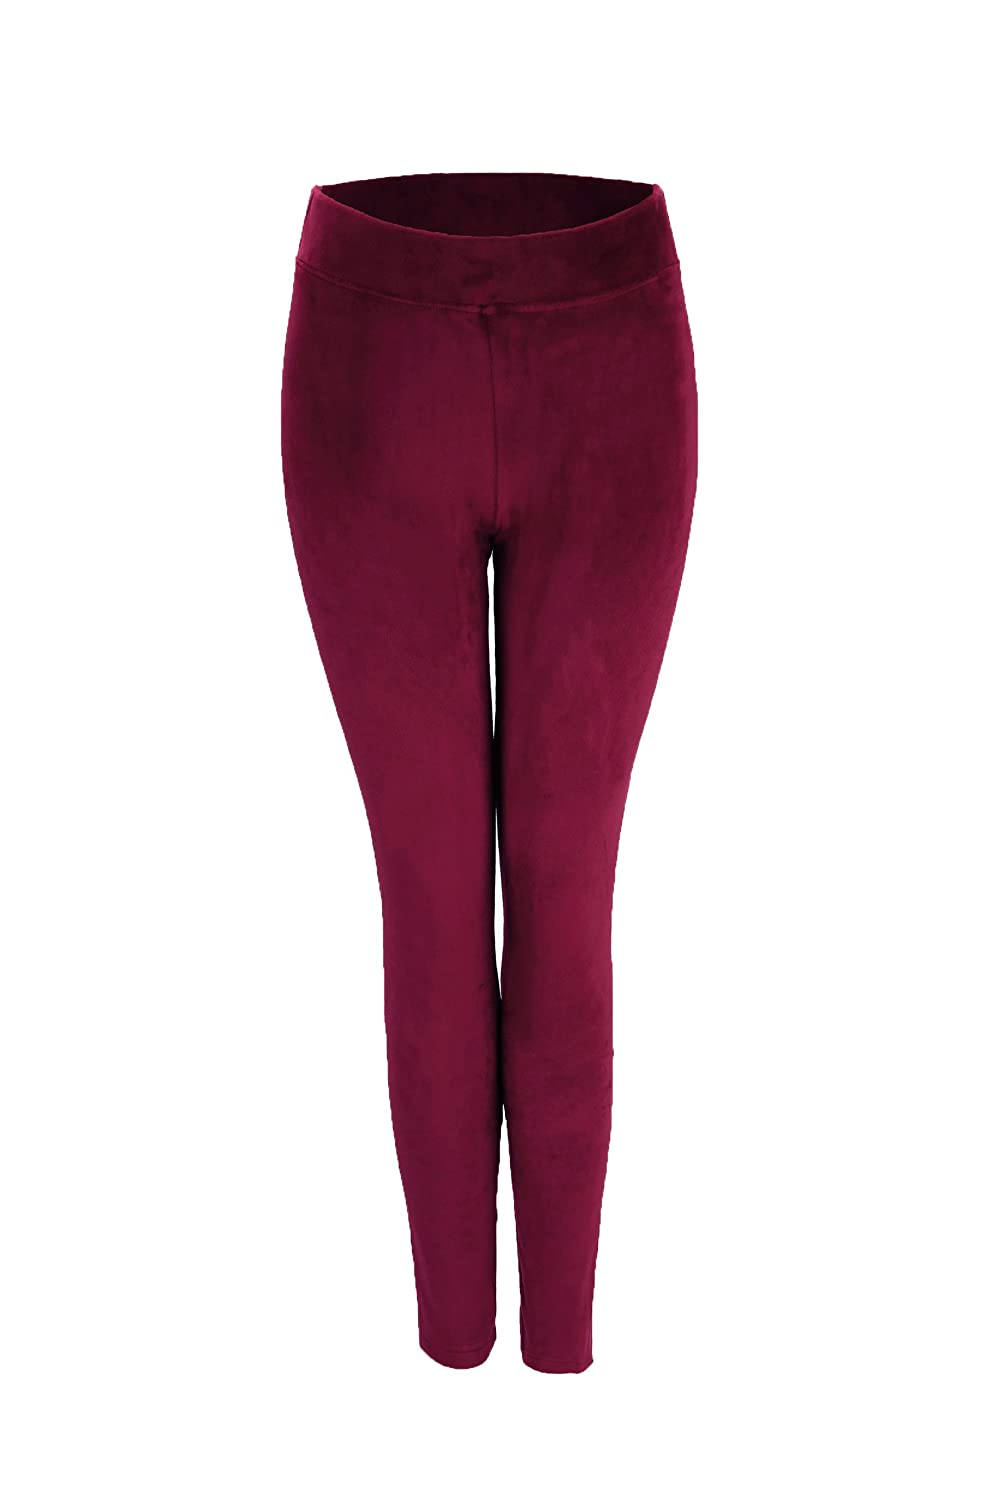 YoungMi Women's Ultra Soft Velvet Stretch Winter Leggings Fashion Pant with Elastic Waistband